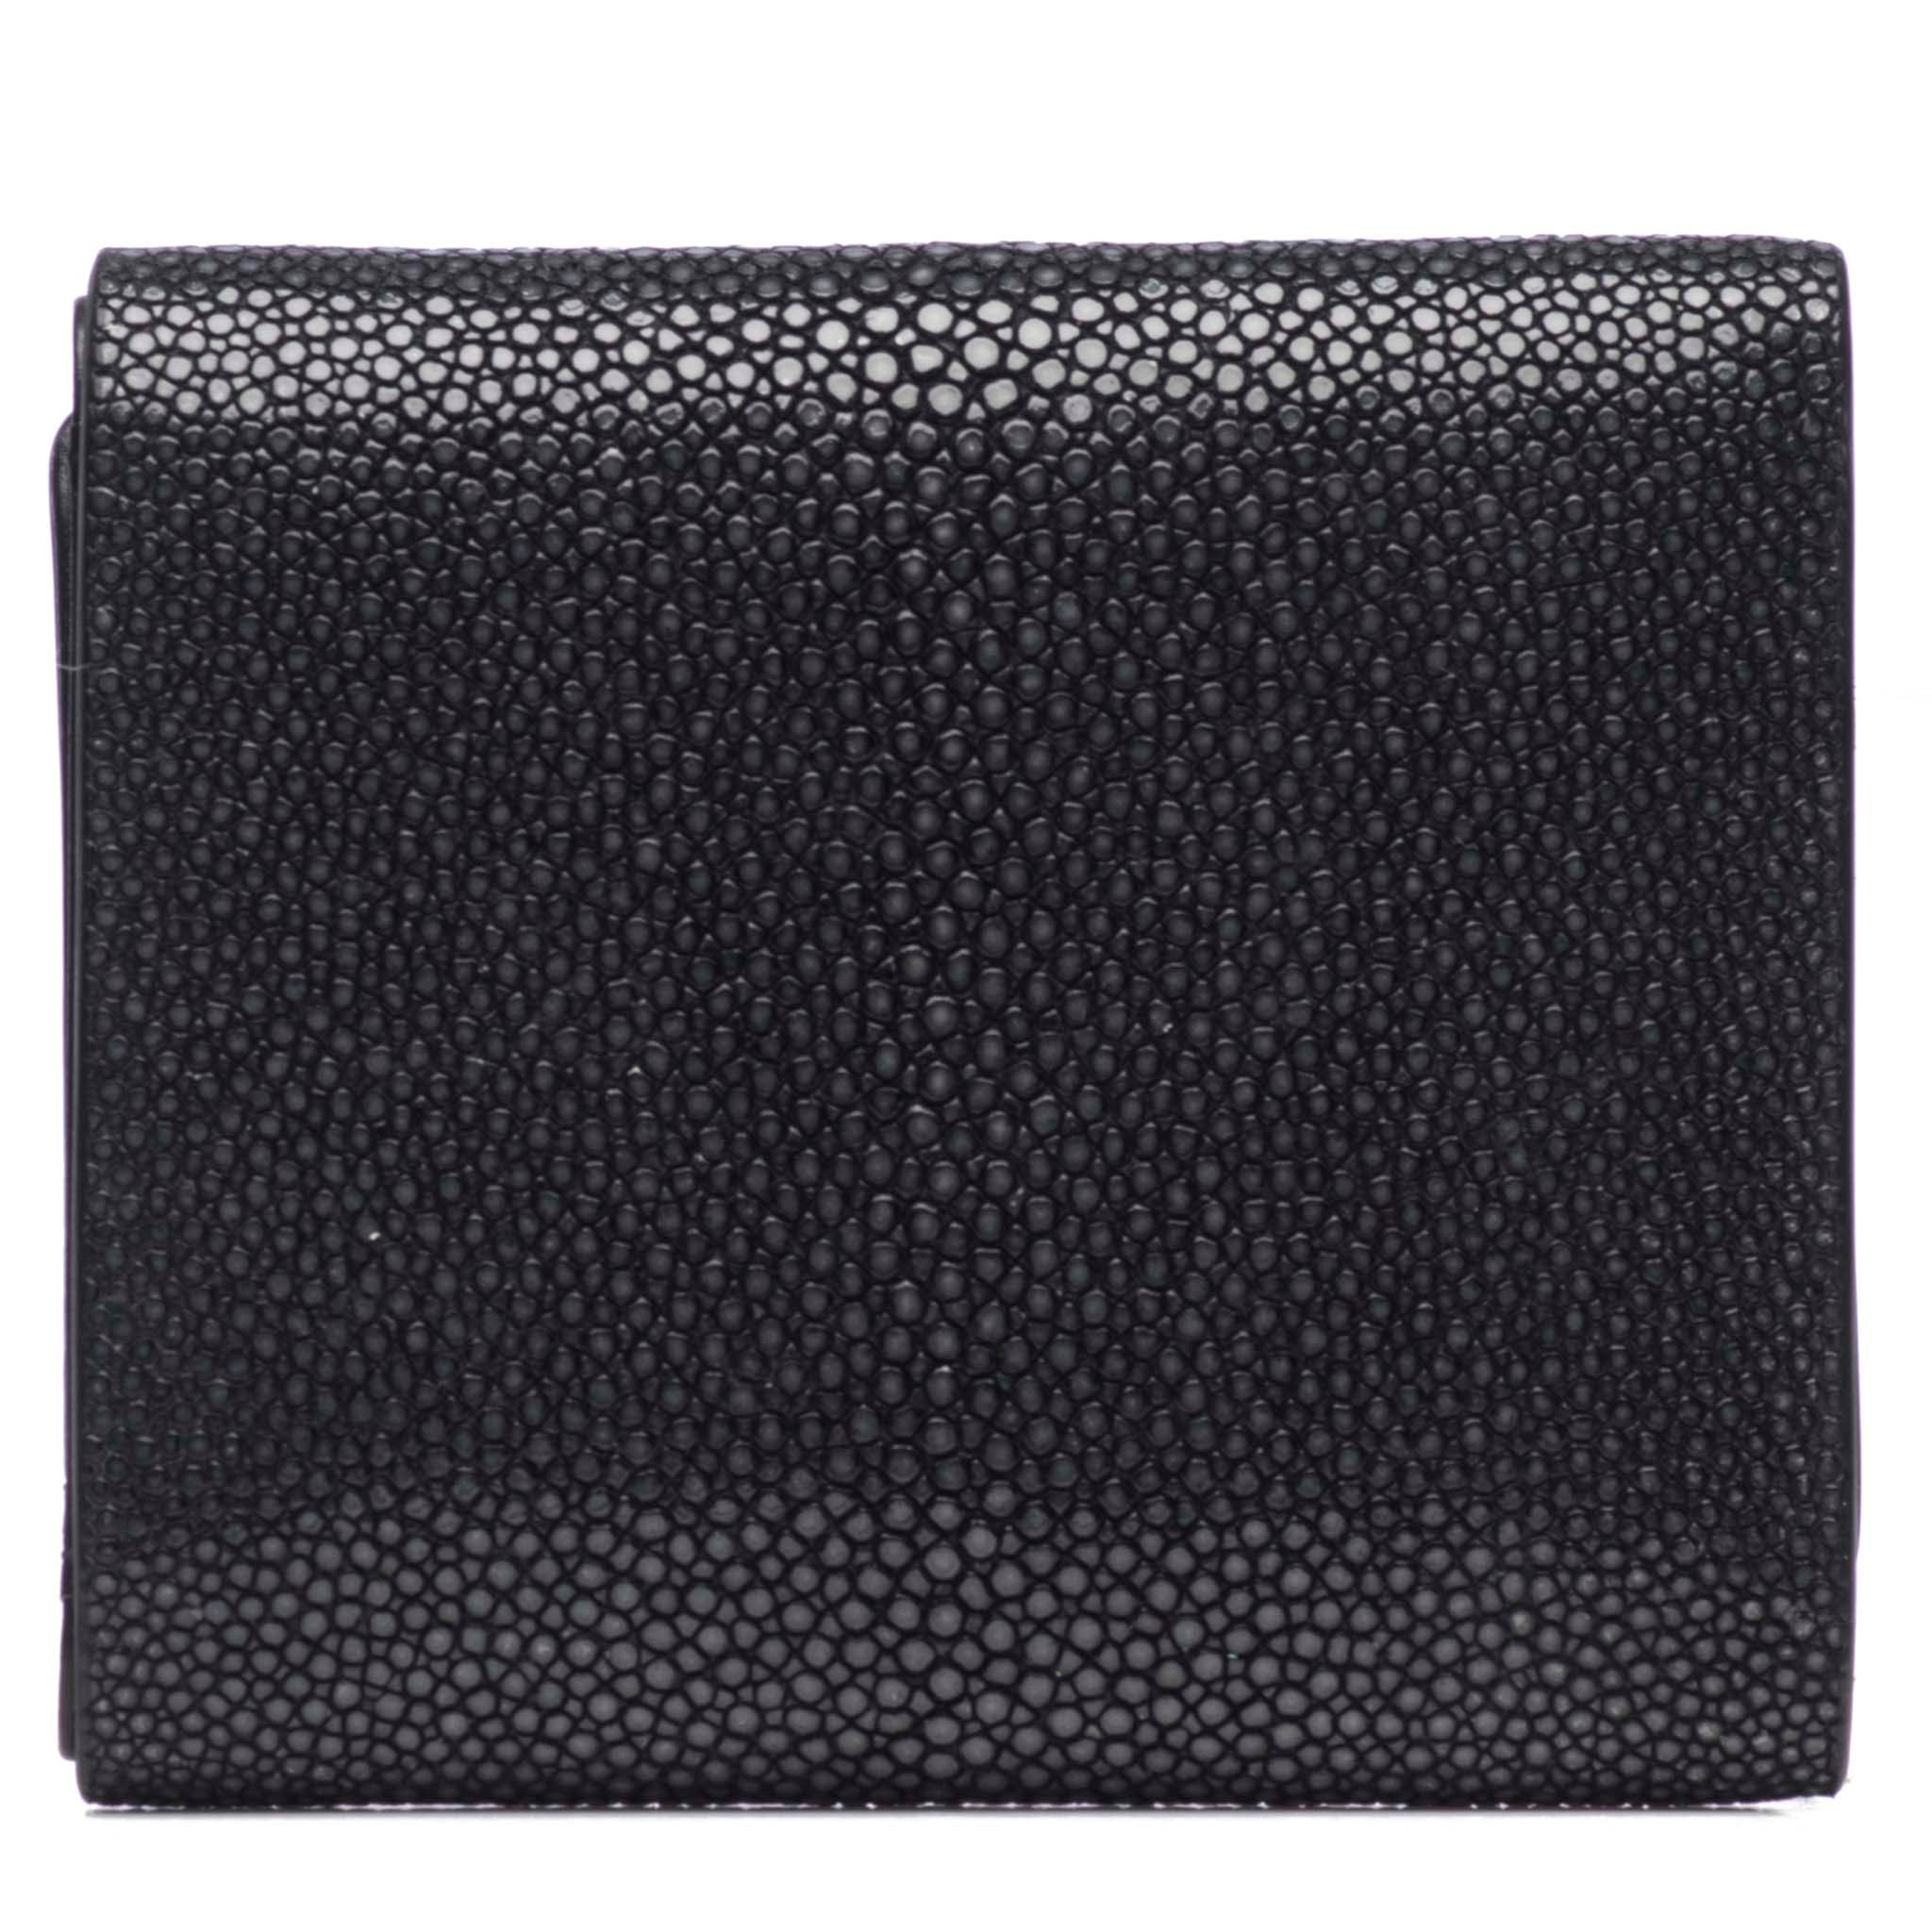 Black Shagreen Tri-Fold Wallet Leather Interior Back View Evan - Vivo Studios